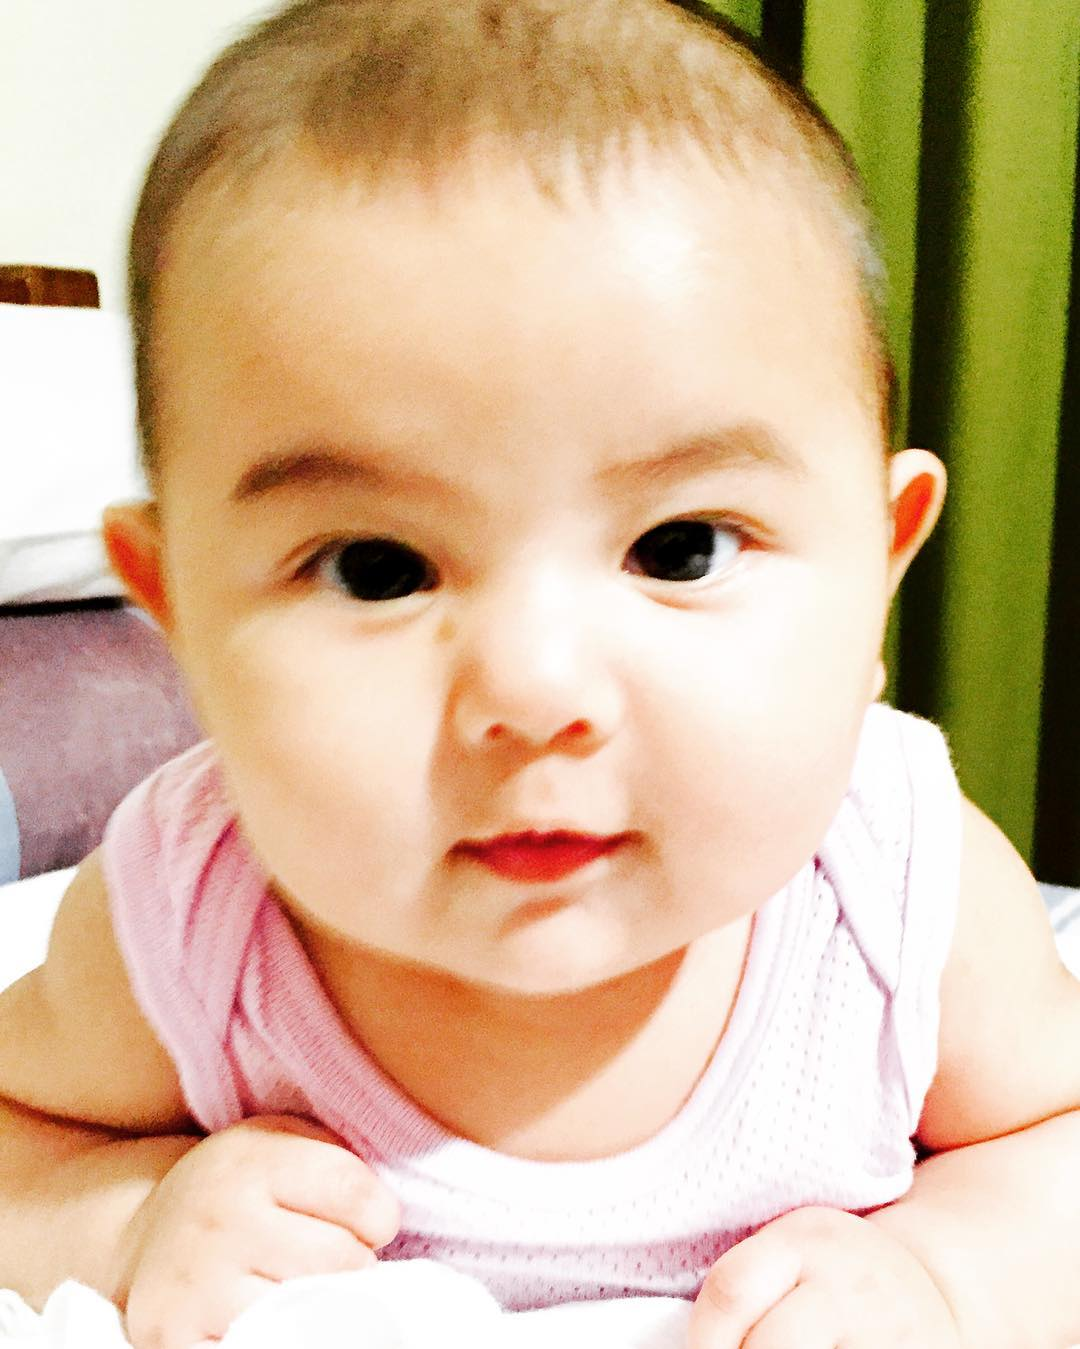 45 times Beauty Gonzalez' Baby Olivia was too adorable for words